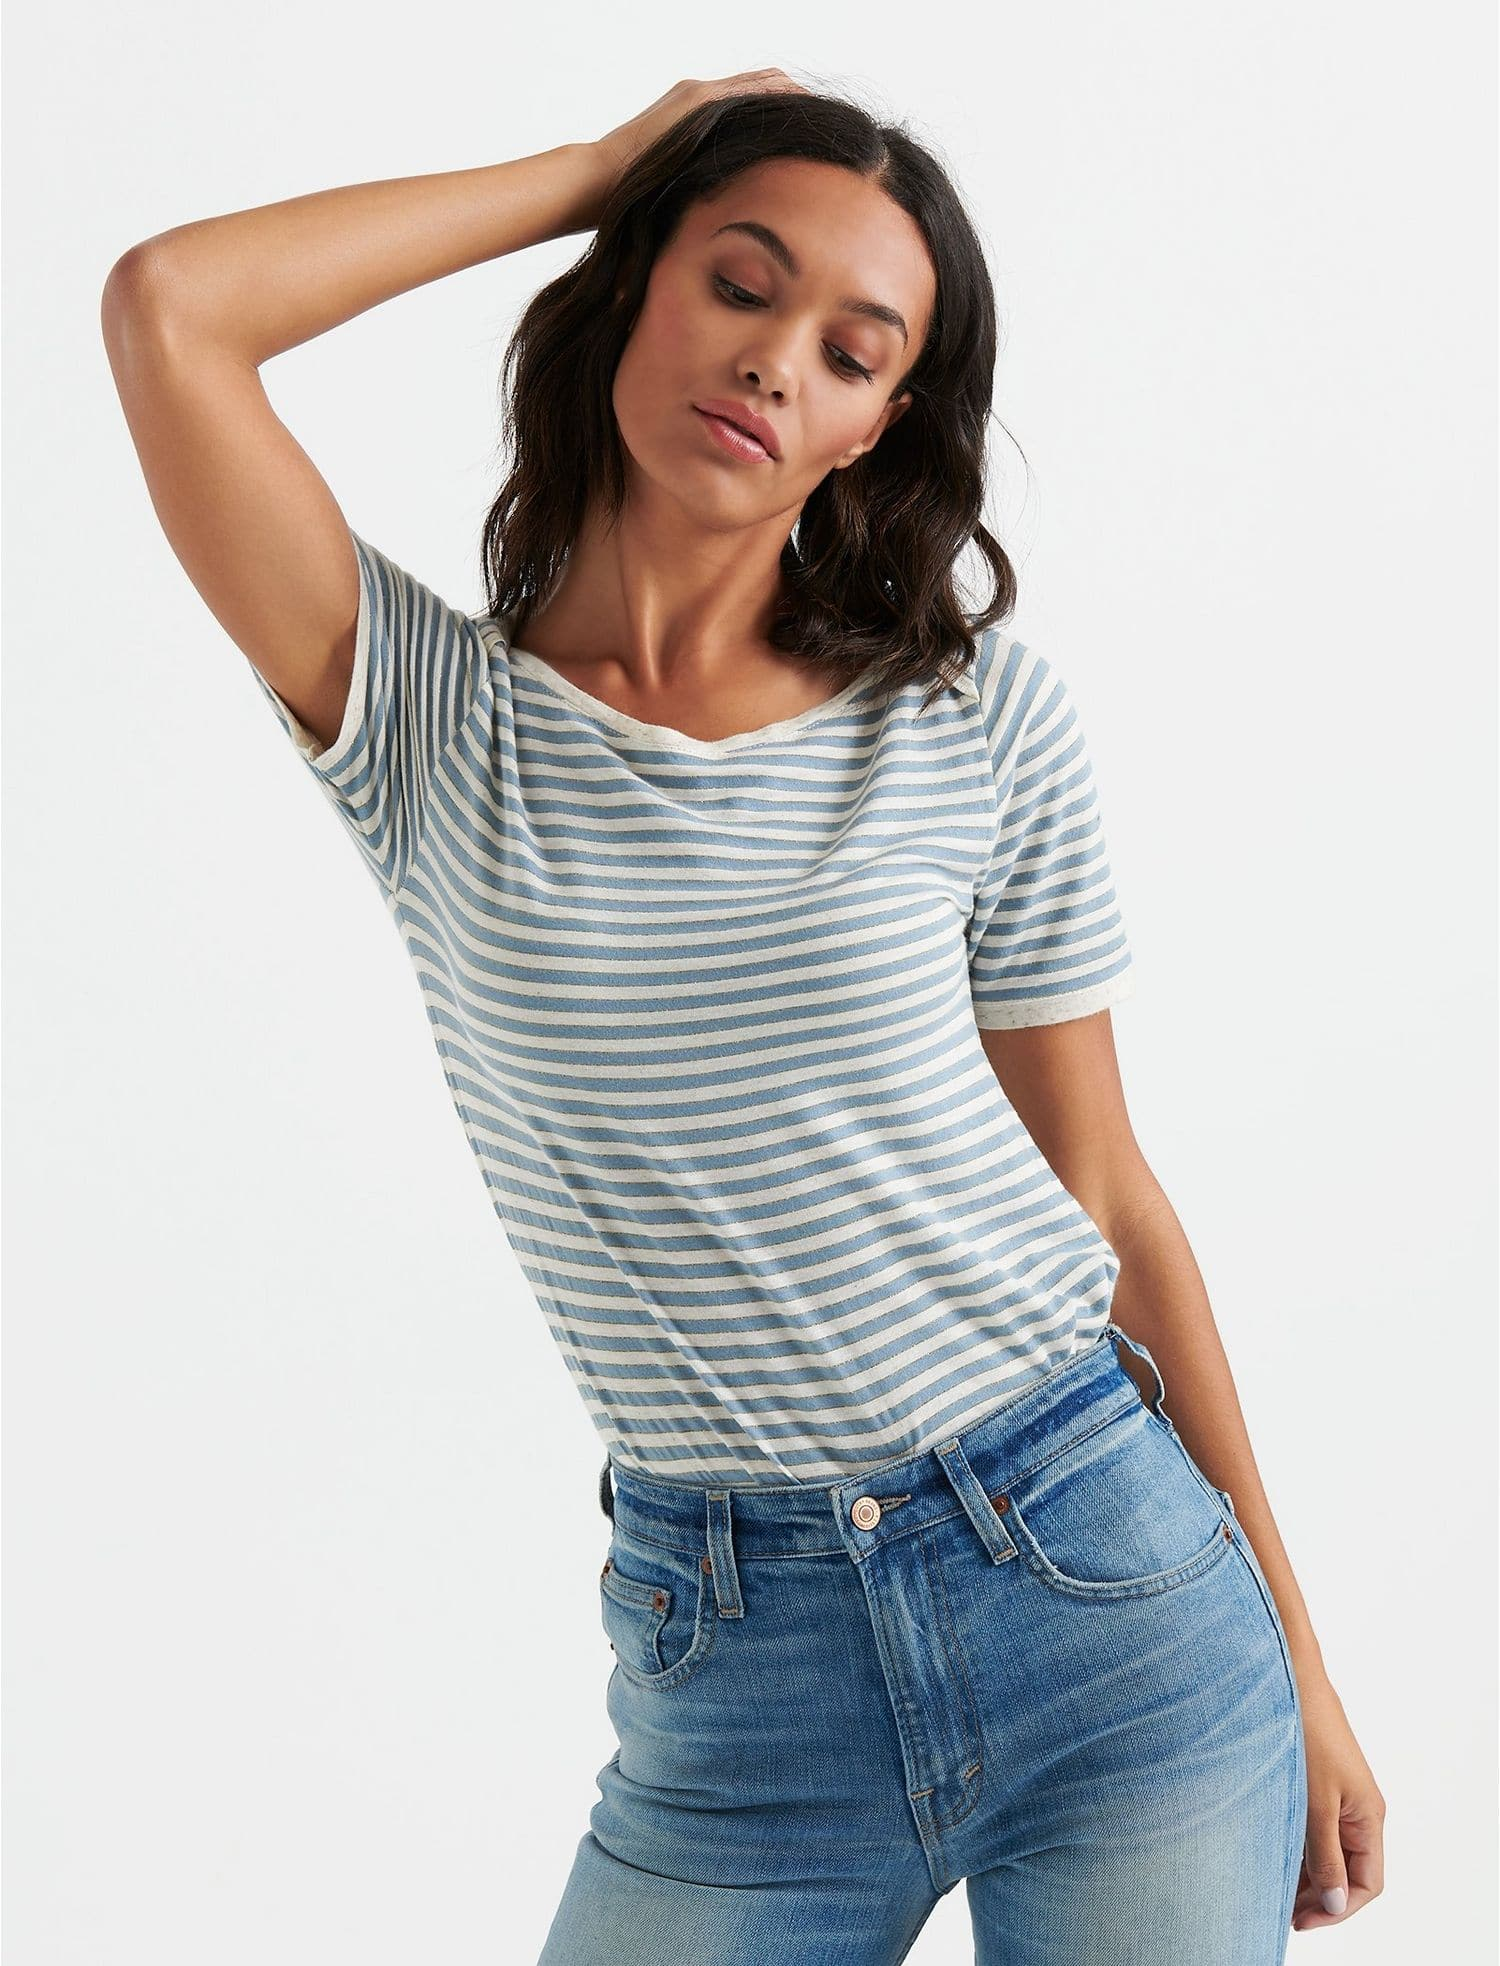 Flash Sale: Extra 60% Off All Sale Styles with items as low as $9.99 8/10/19-8/11/19 ONLY